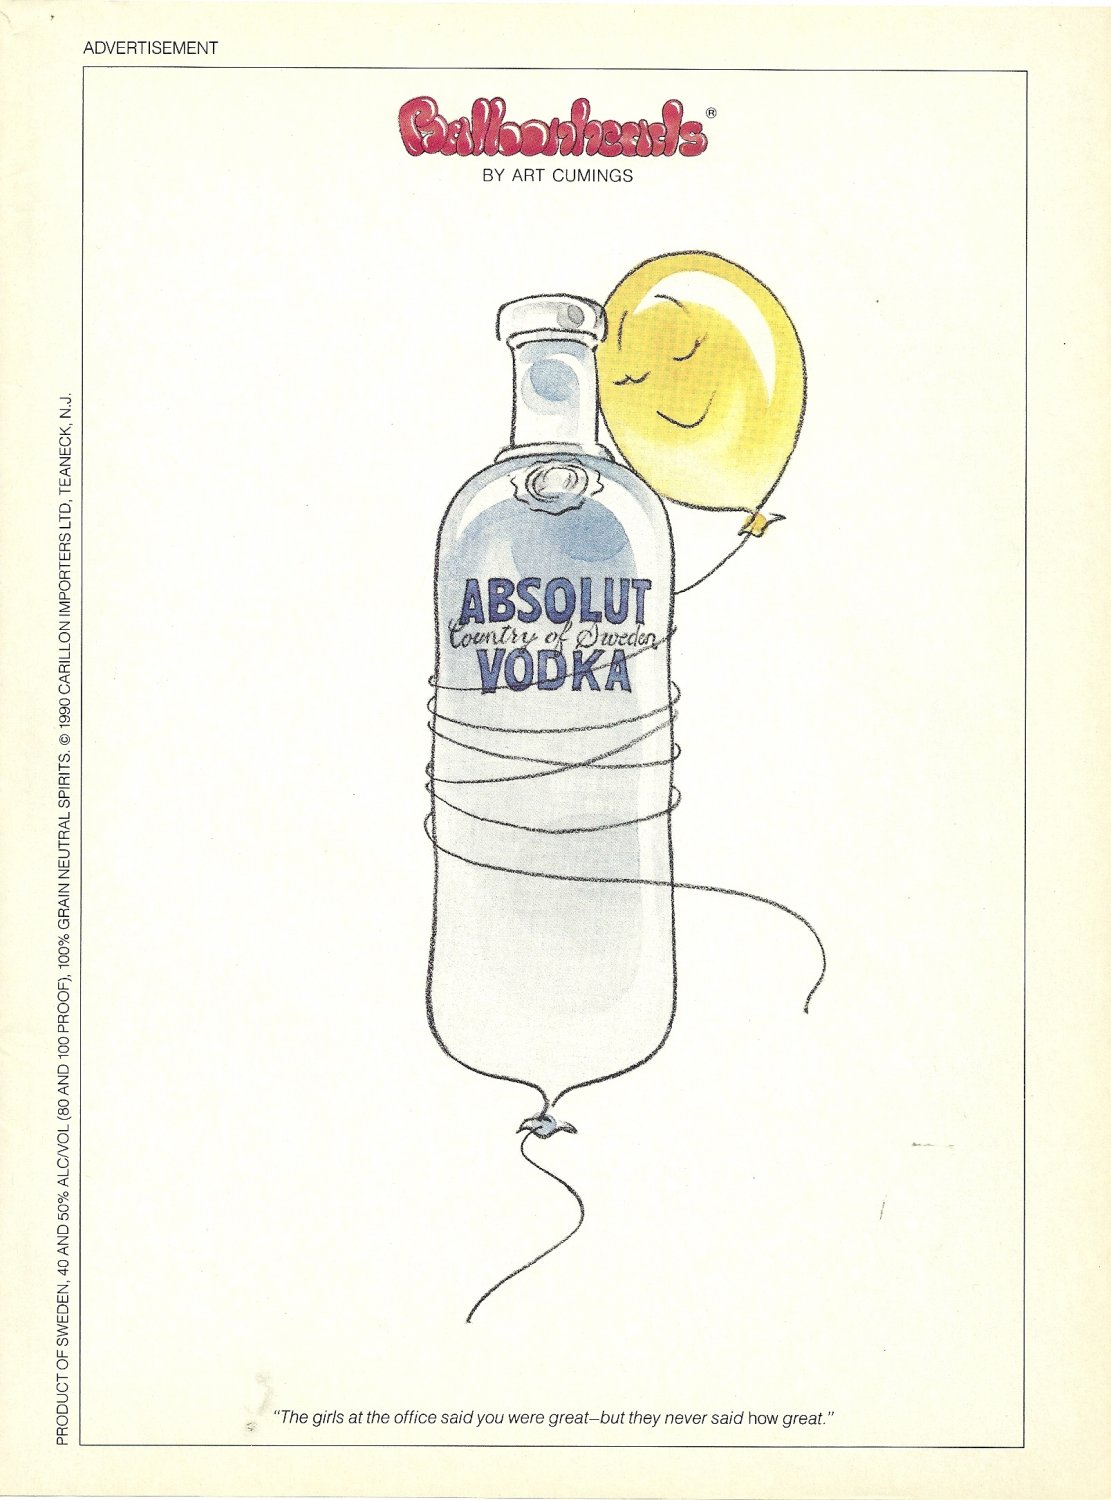 """ABSOLUT BALLOONHEADS Vodka Magazine Ad """"The Girls at the office..."""" HARD TO GET"""